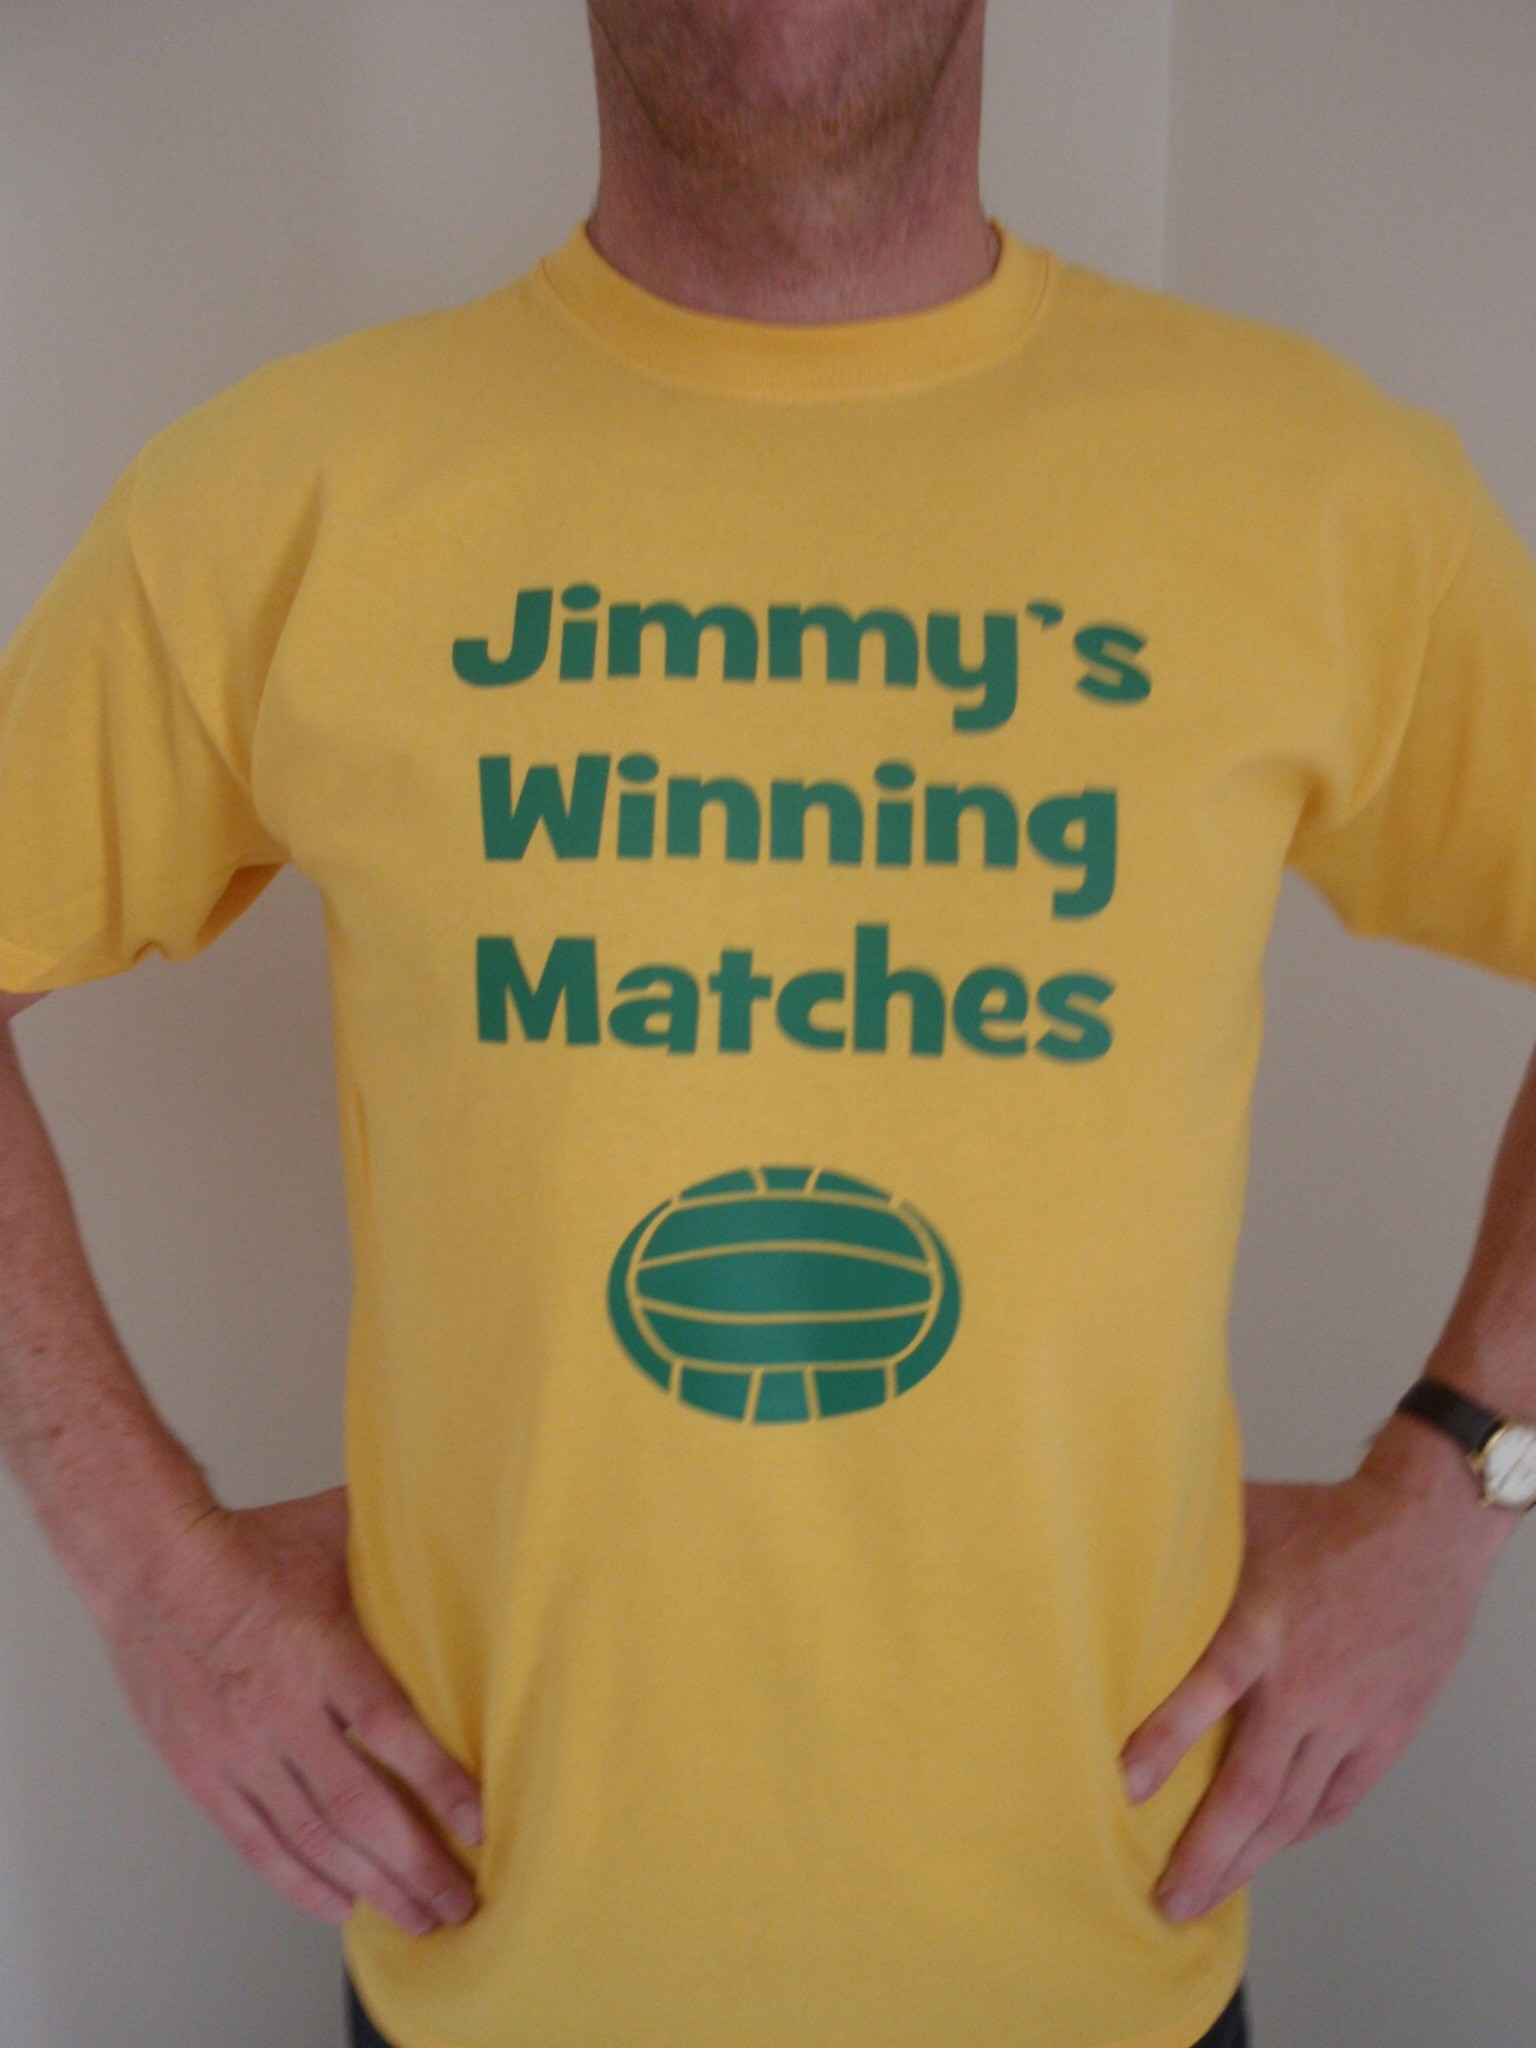 jimmy's winning matches